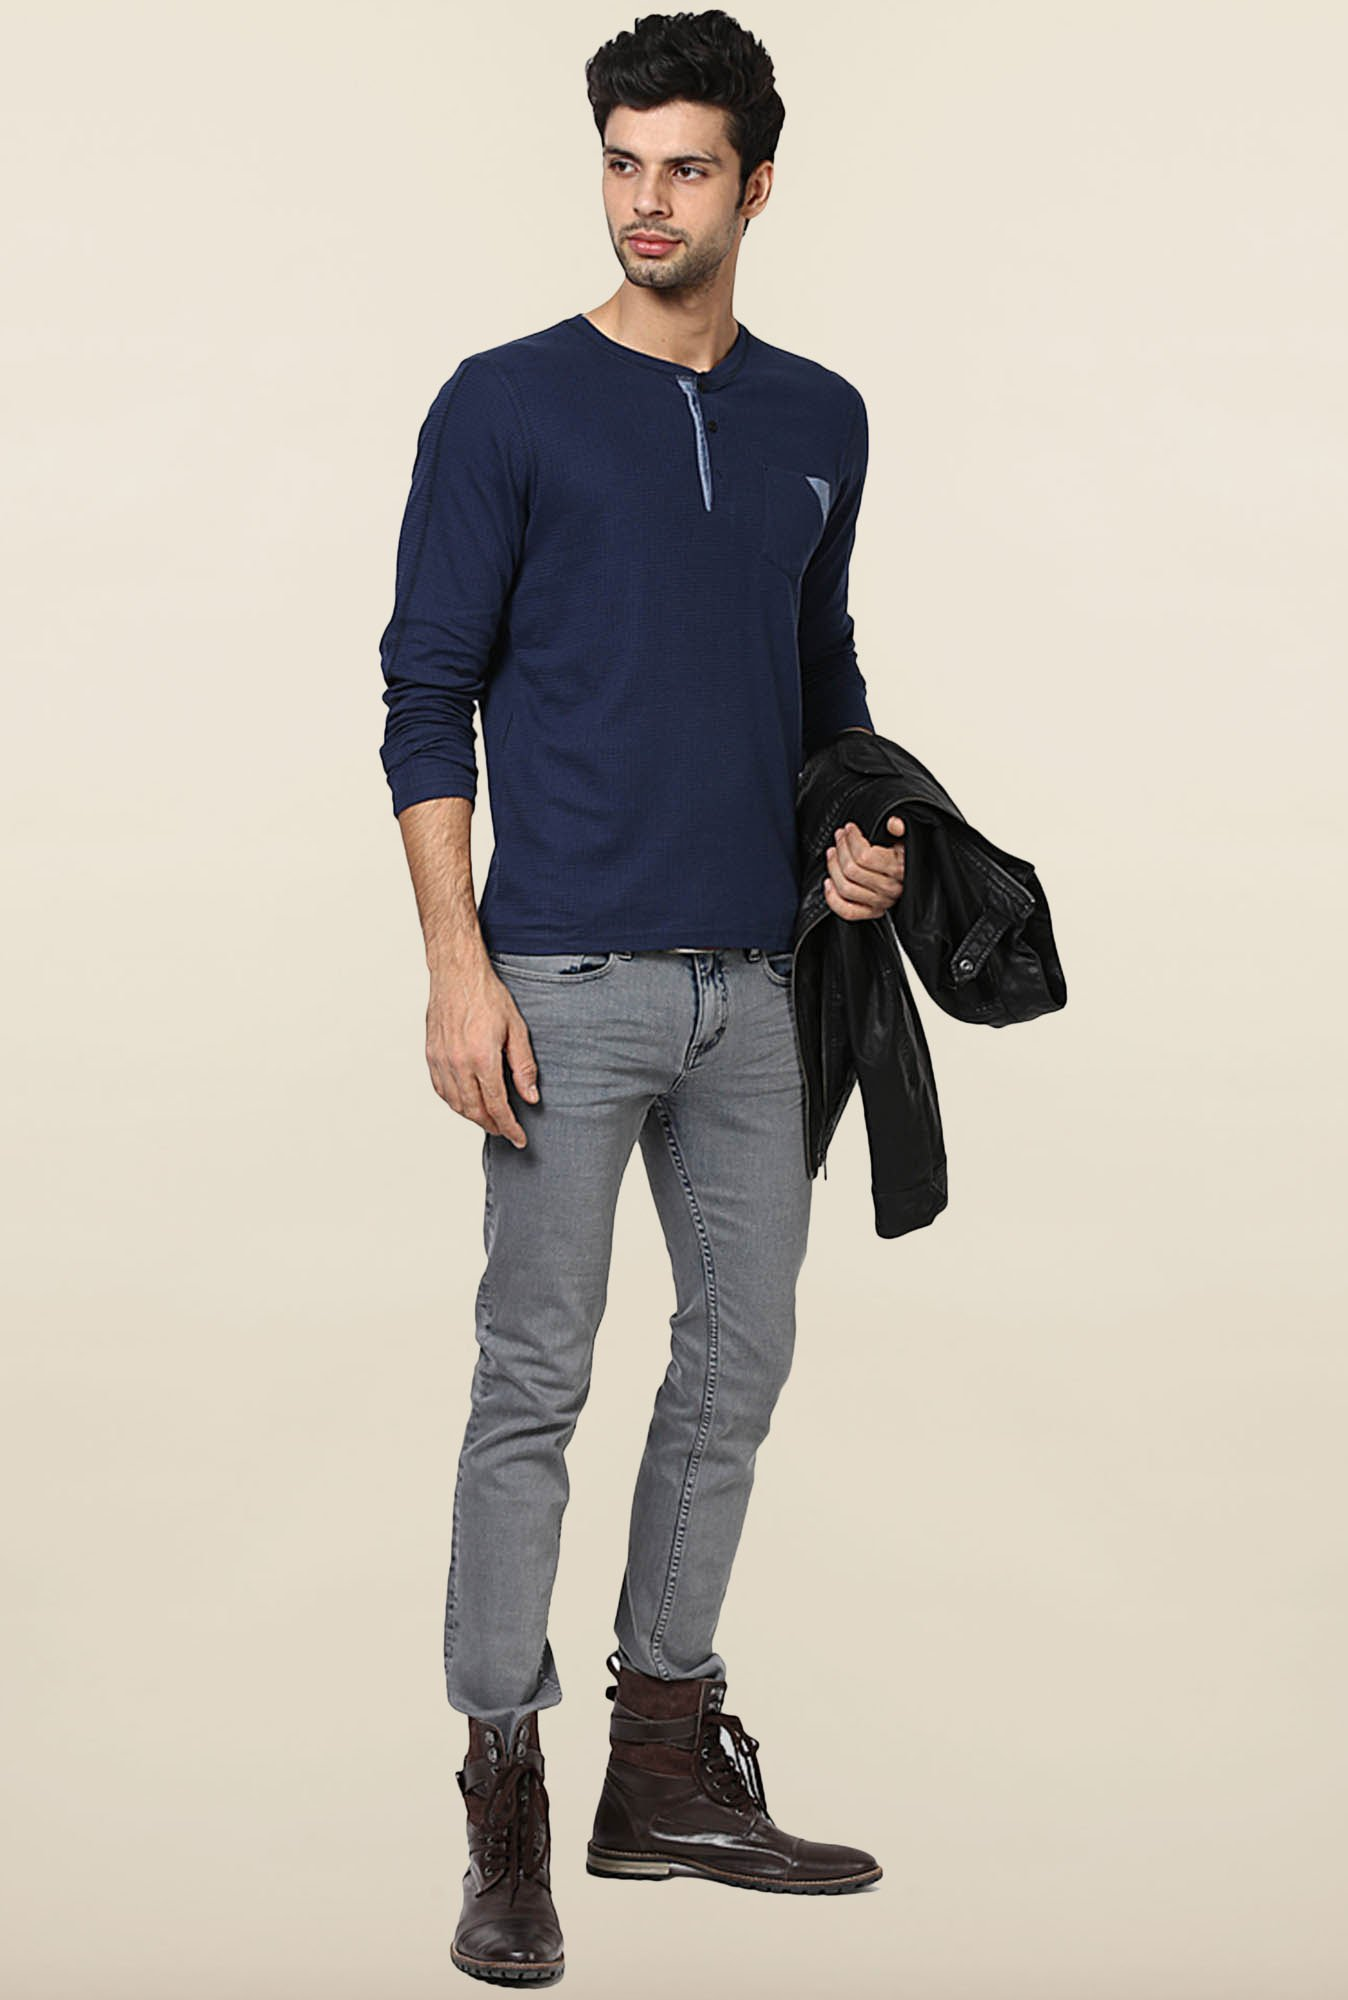 Jack & Jones Navy Henley T-Shirt